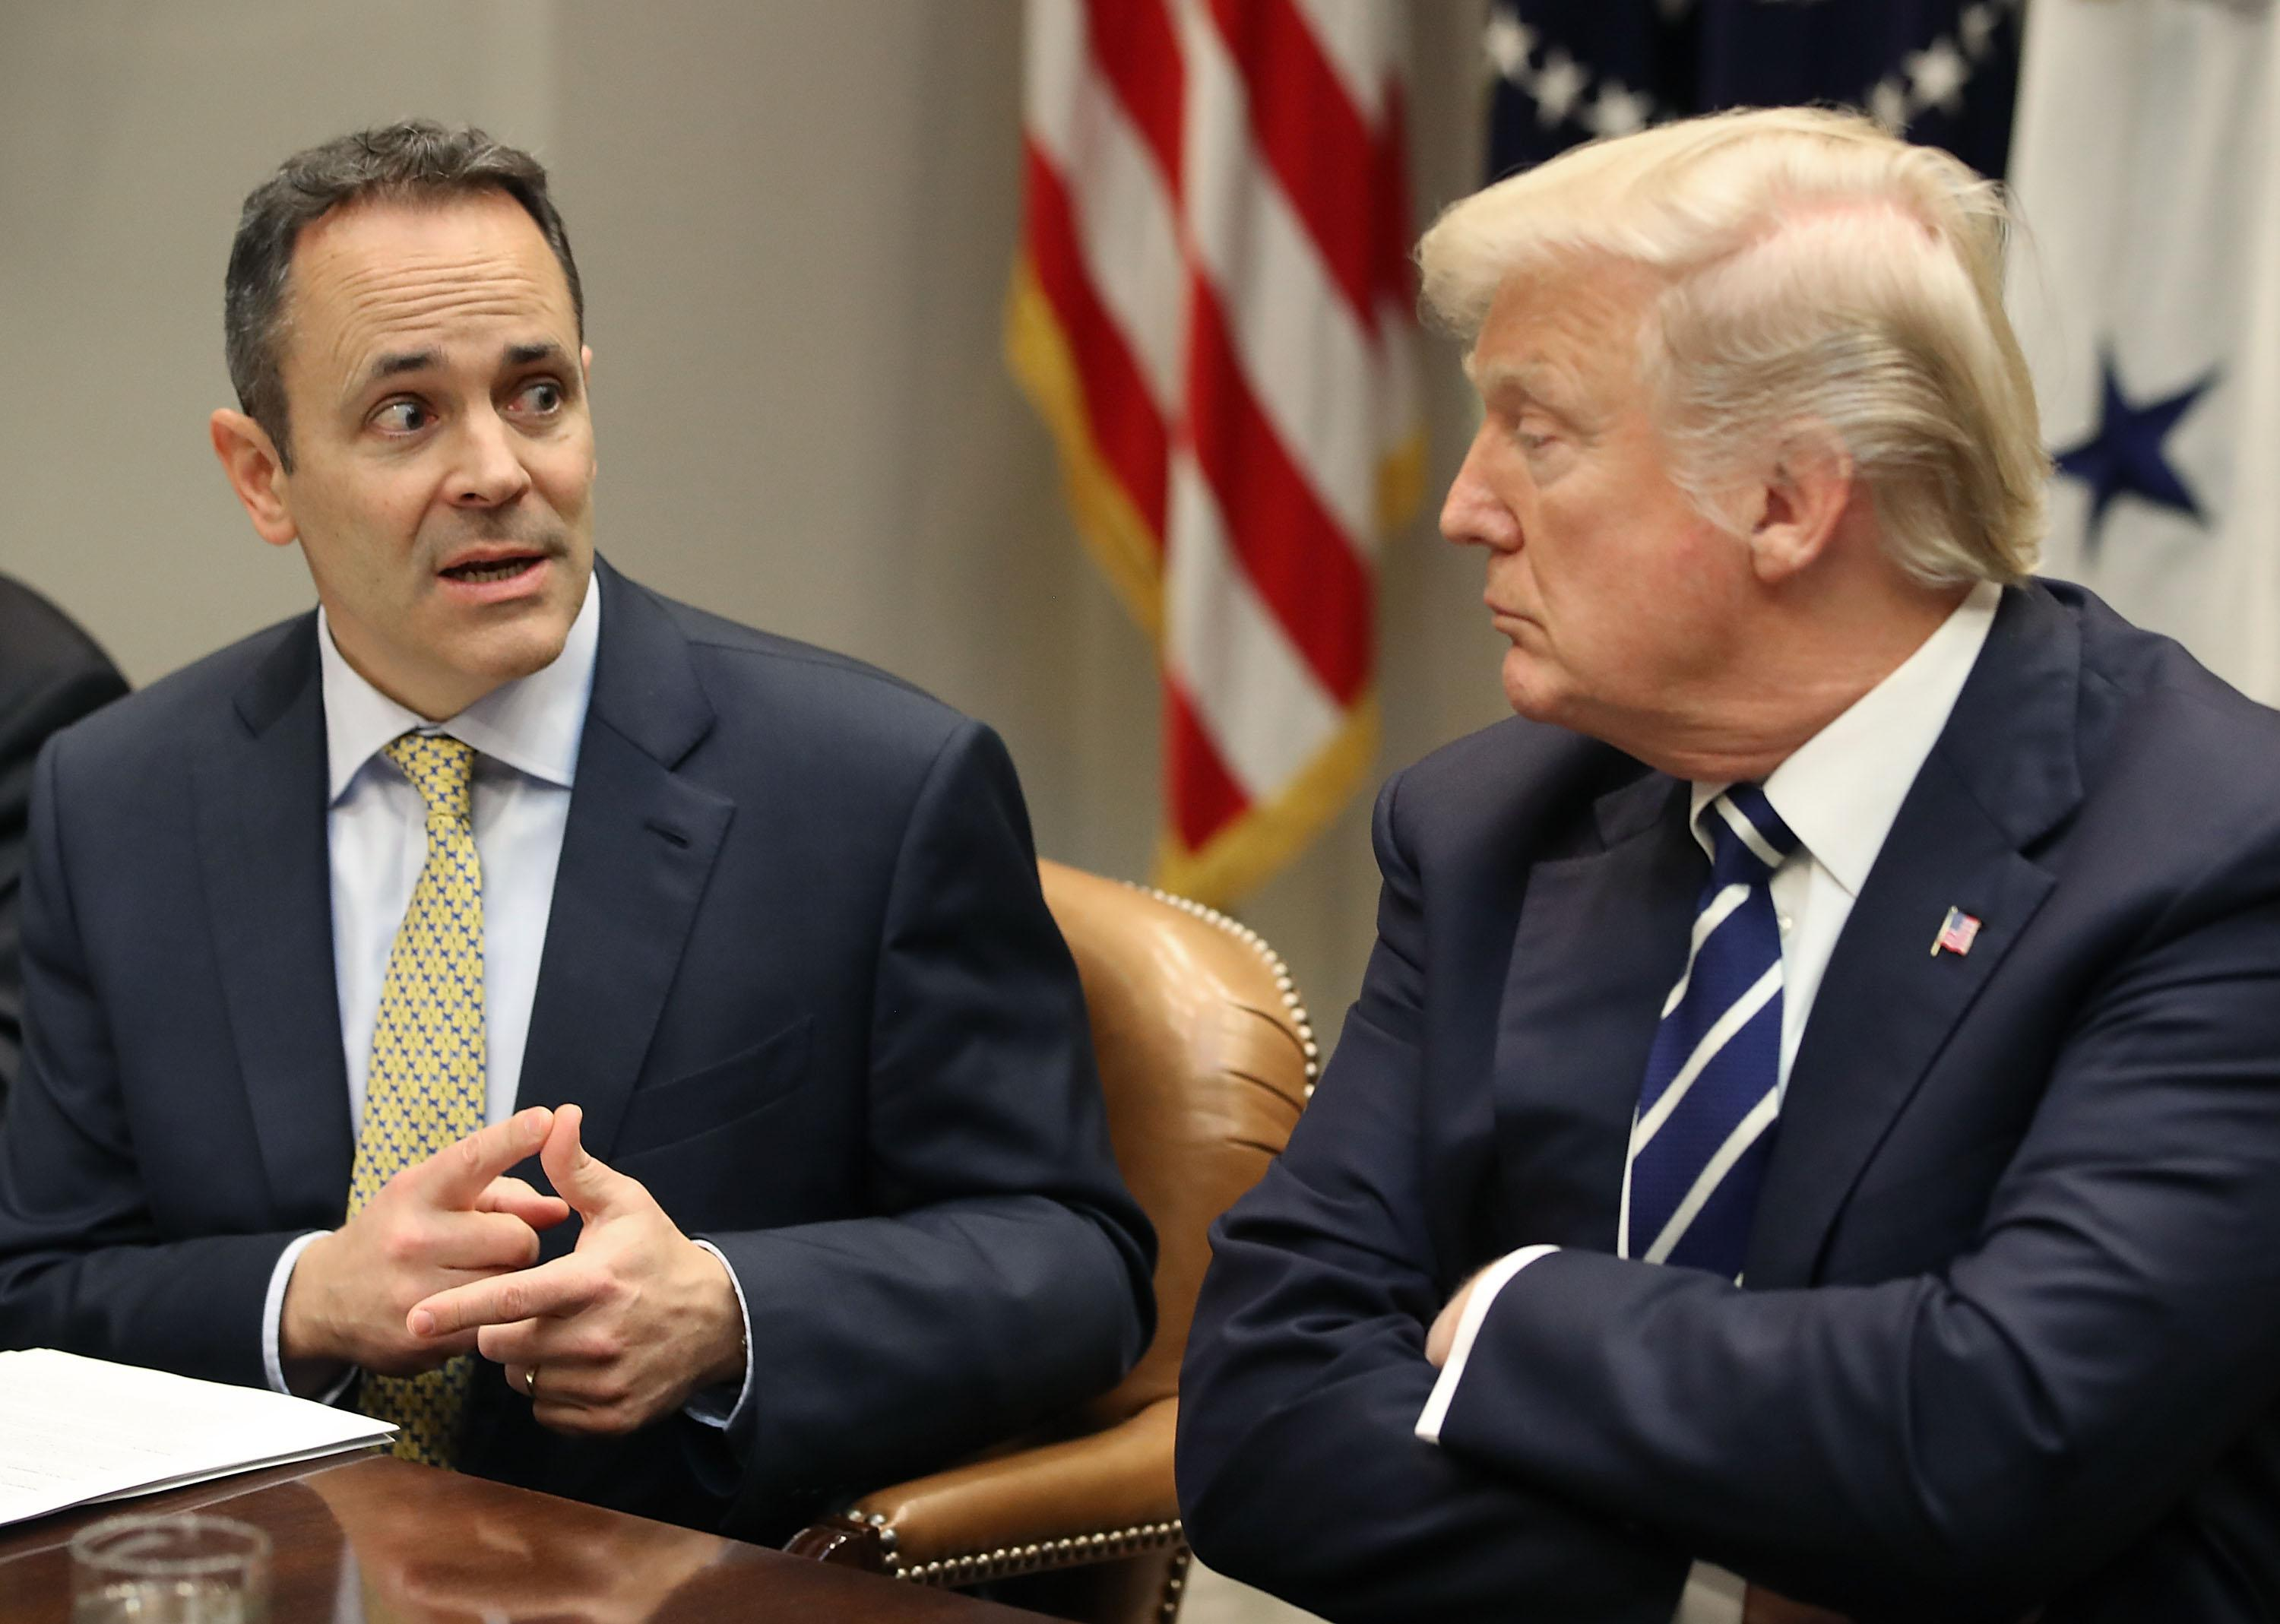 President Donald Trump listens to Kentucky Governor Matt Bevin speak at the White House, on January 11, 2018 in Washington, DC.